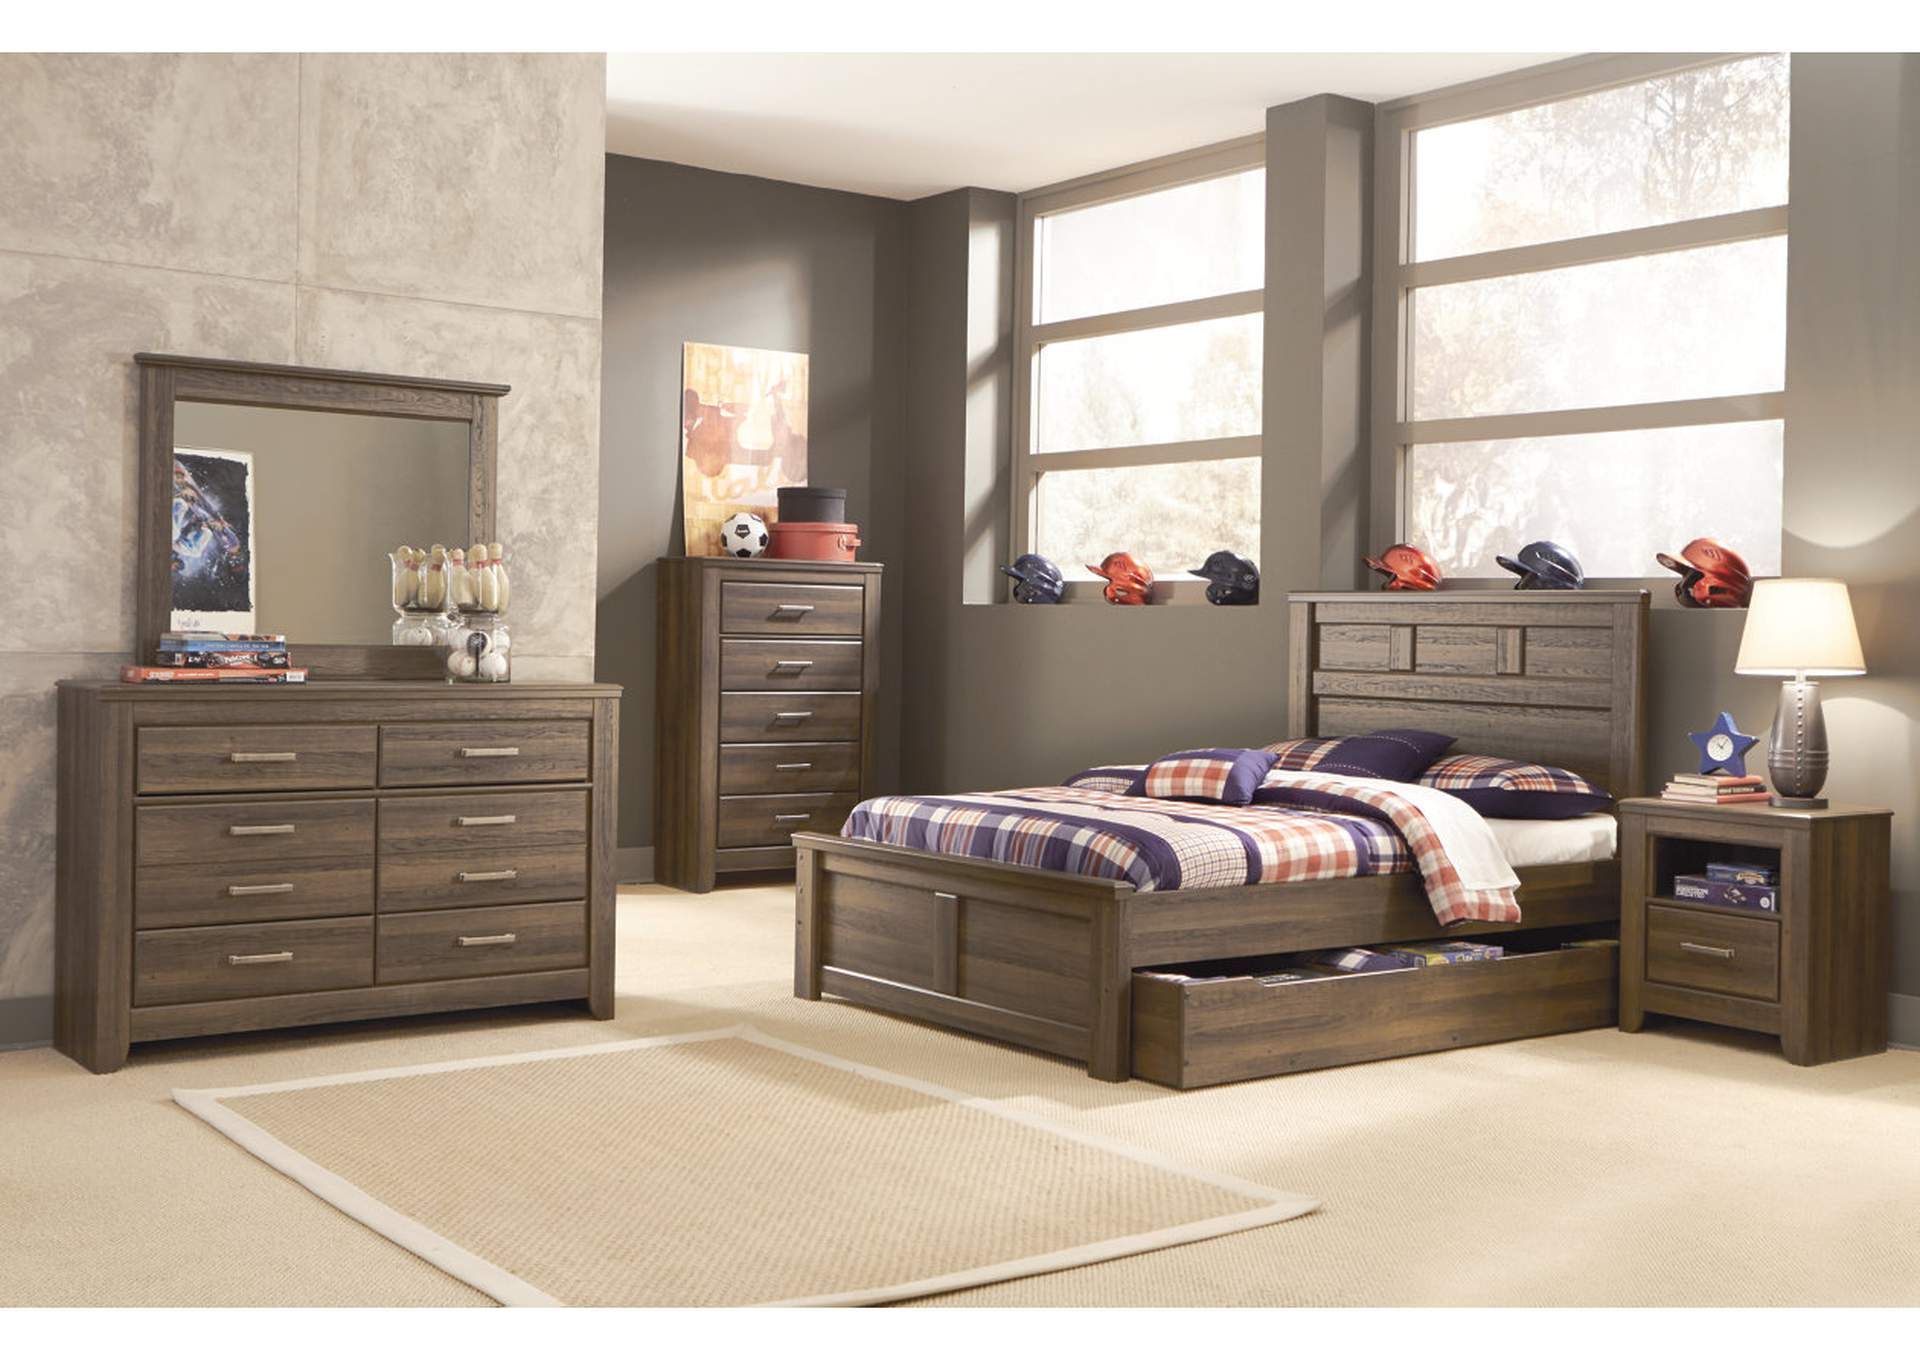 Juararo Full Panel Storage Bed w/Dresser & Mirror,Signature Design By Ashley